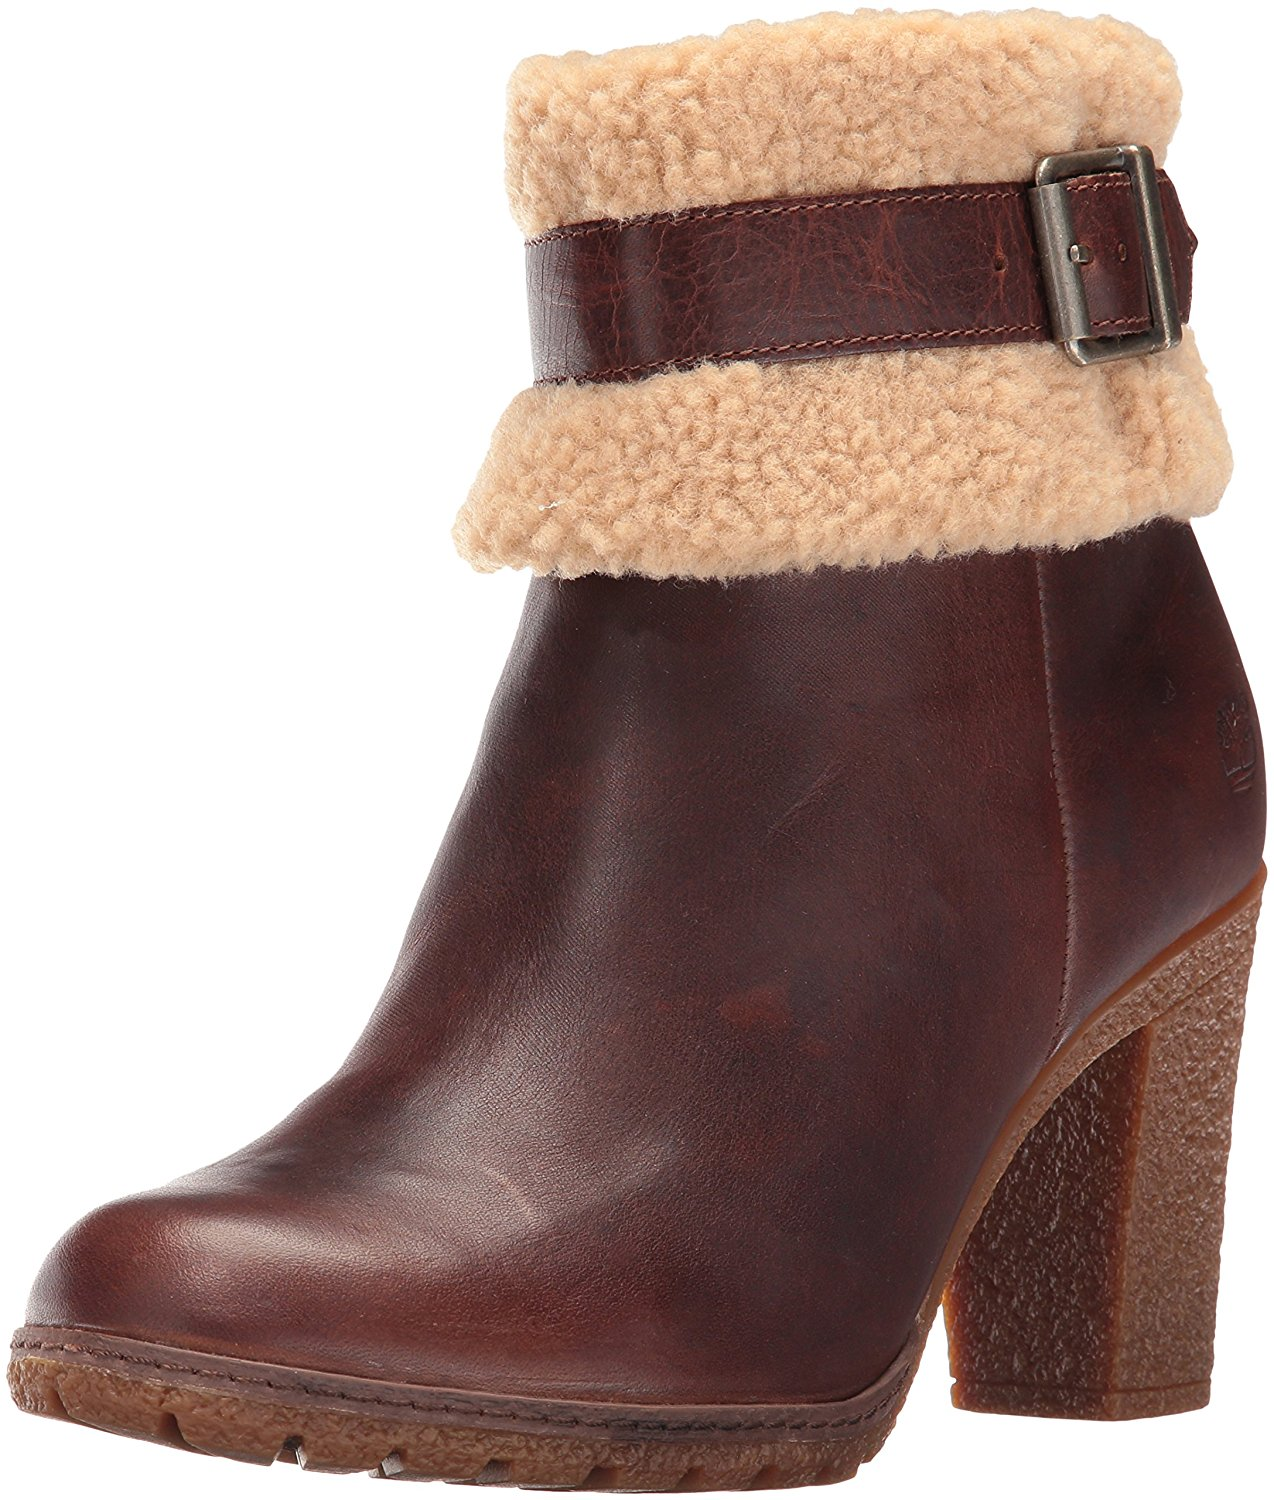 Timberland Women's Glancy Teddy Fleece Fold Down Boot by